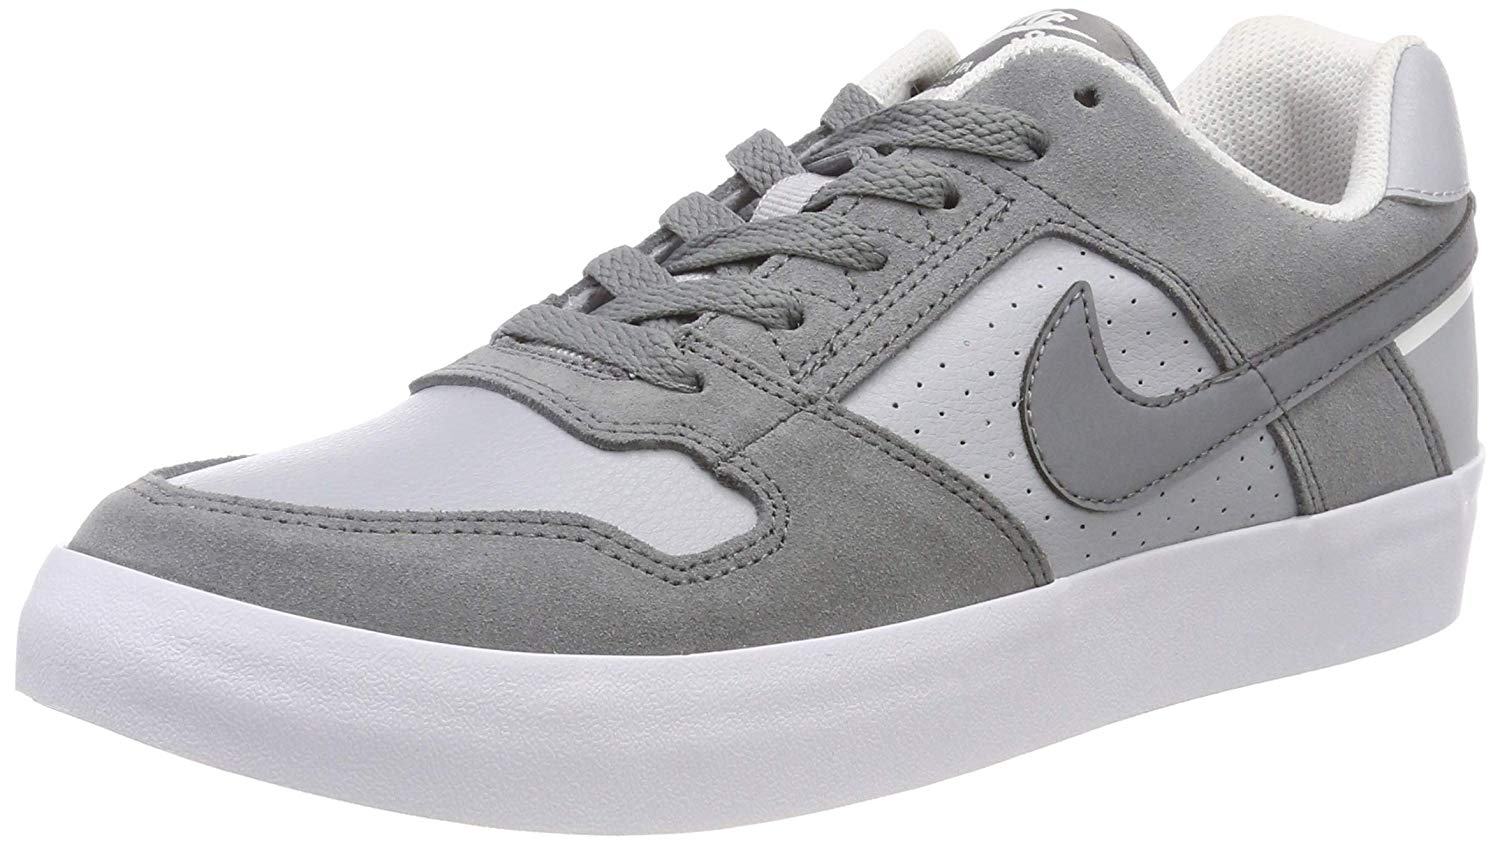 92c98d0c0e05 Get Quotations · Nike Mens SB Delta Force Vulc Cool Grey Wolf Grey White  Size 10